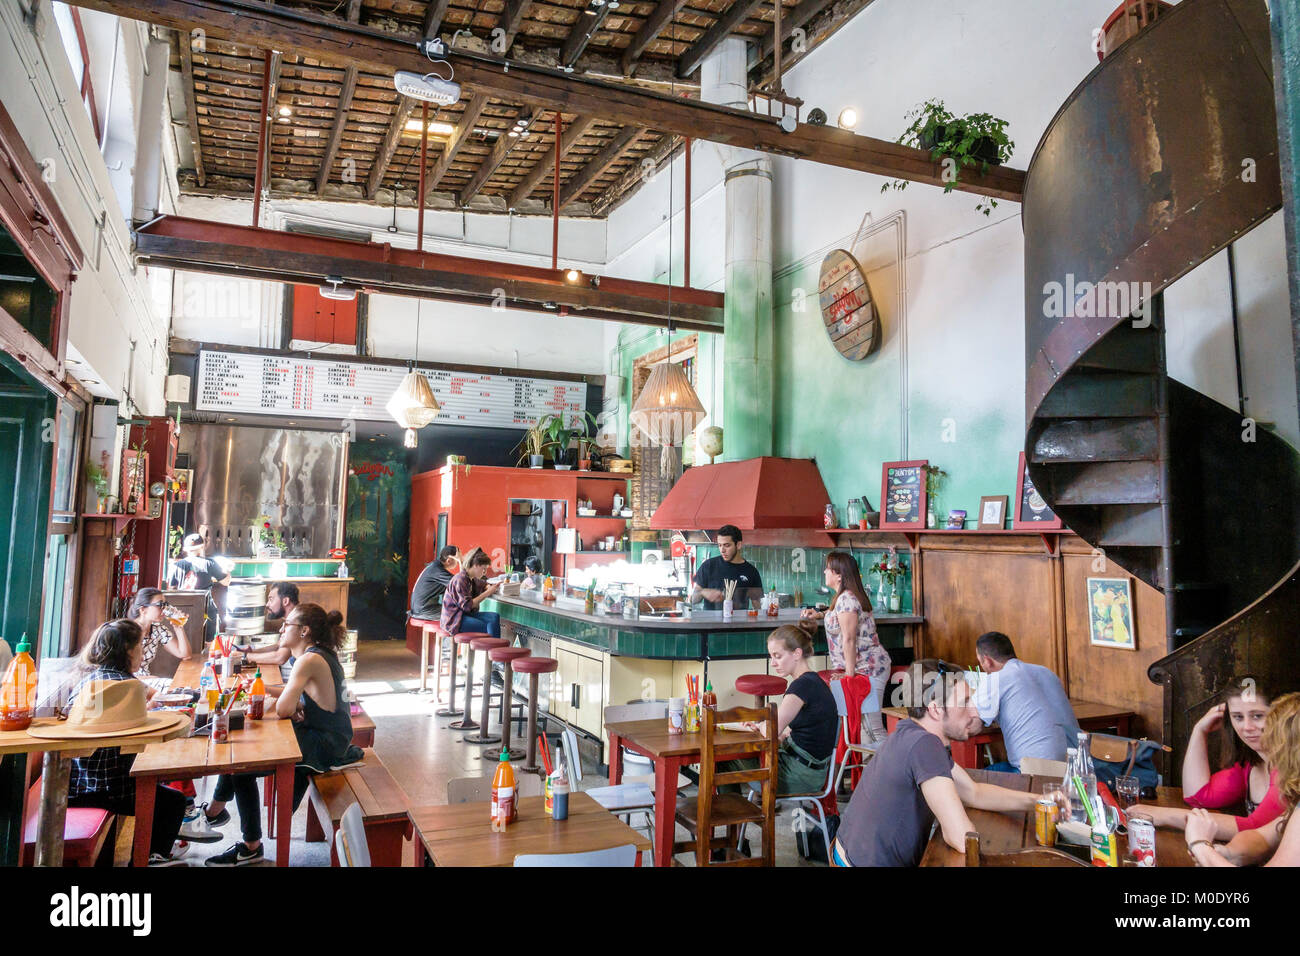 the restobar industry Rsm's industry insider shares insights on trends and issues affecting restaurant  operators and their businesses.